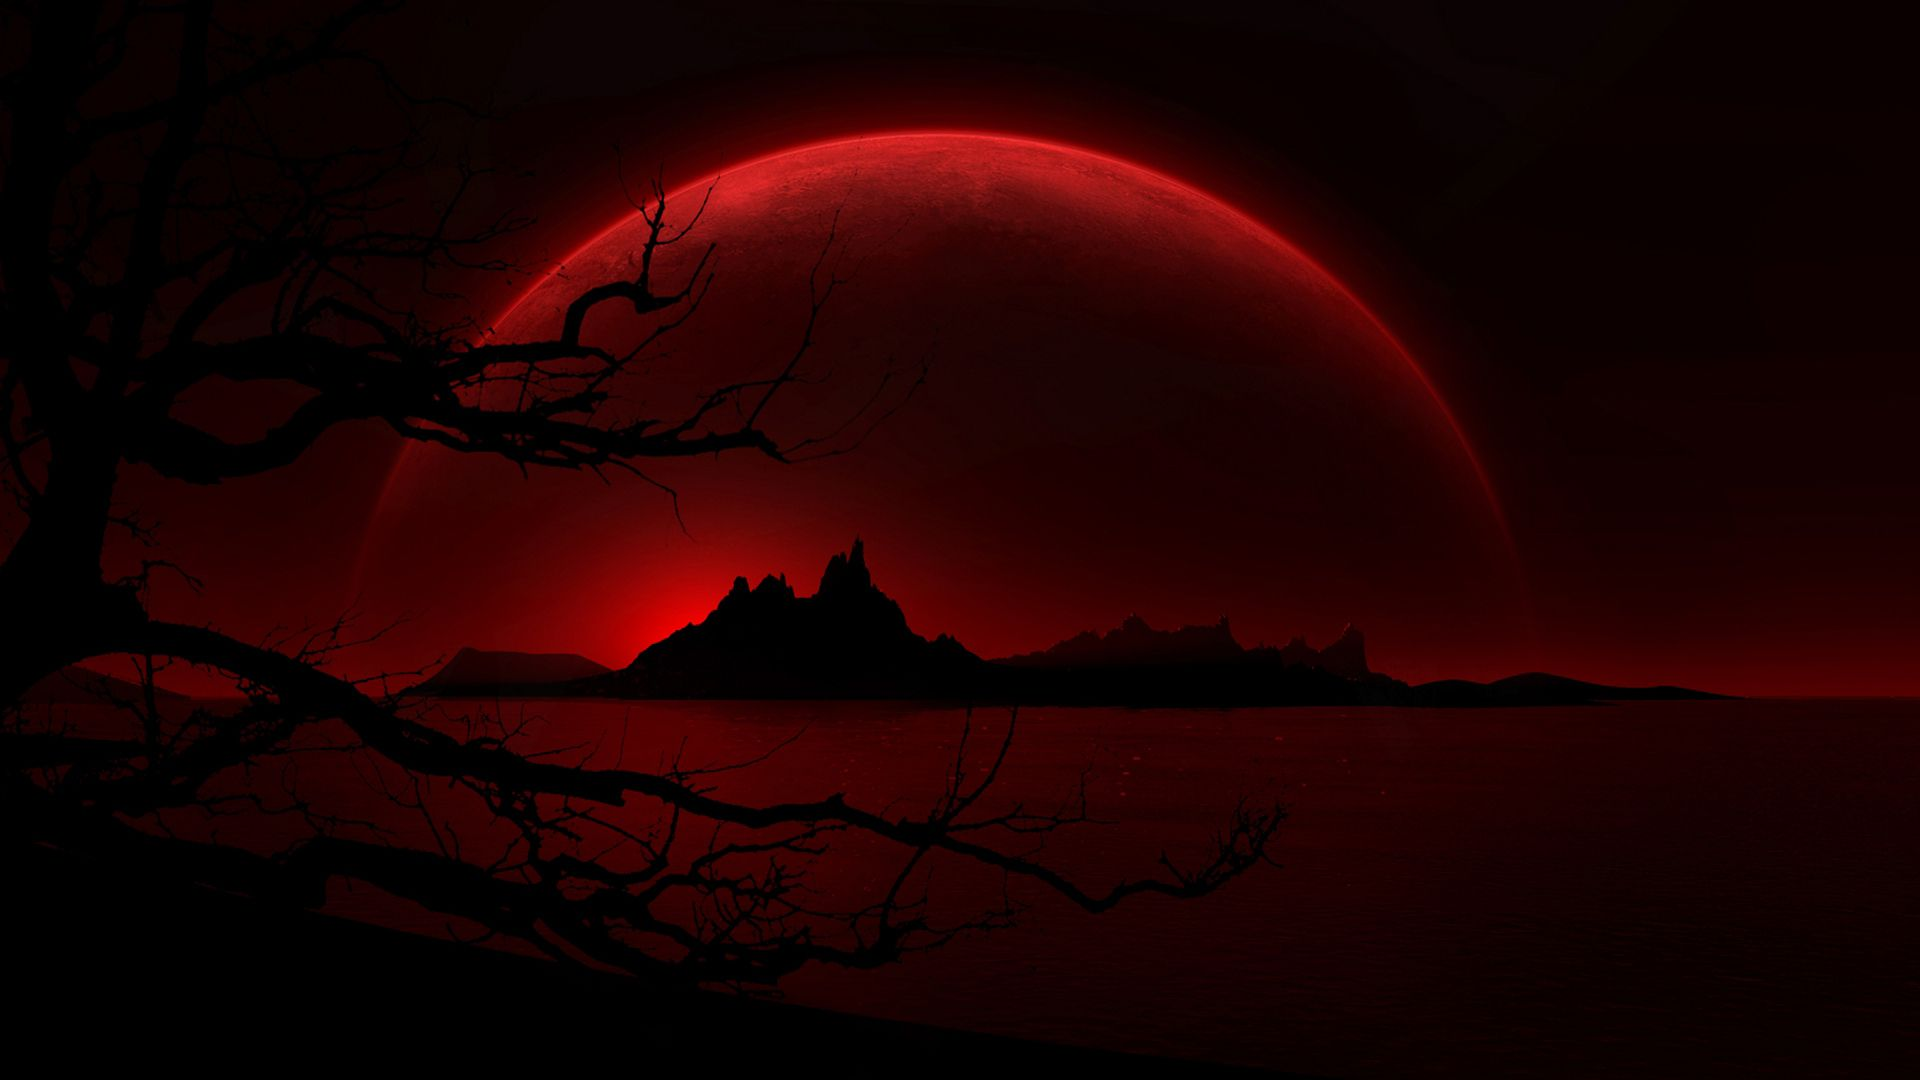 blood-red-moon-hd-wallpaper-341068.jpg (1920x1080) ? Mystery Anime Wallpapers ? Pinterest ...